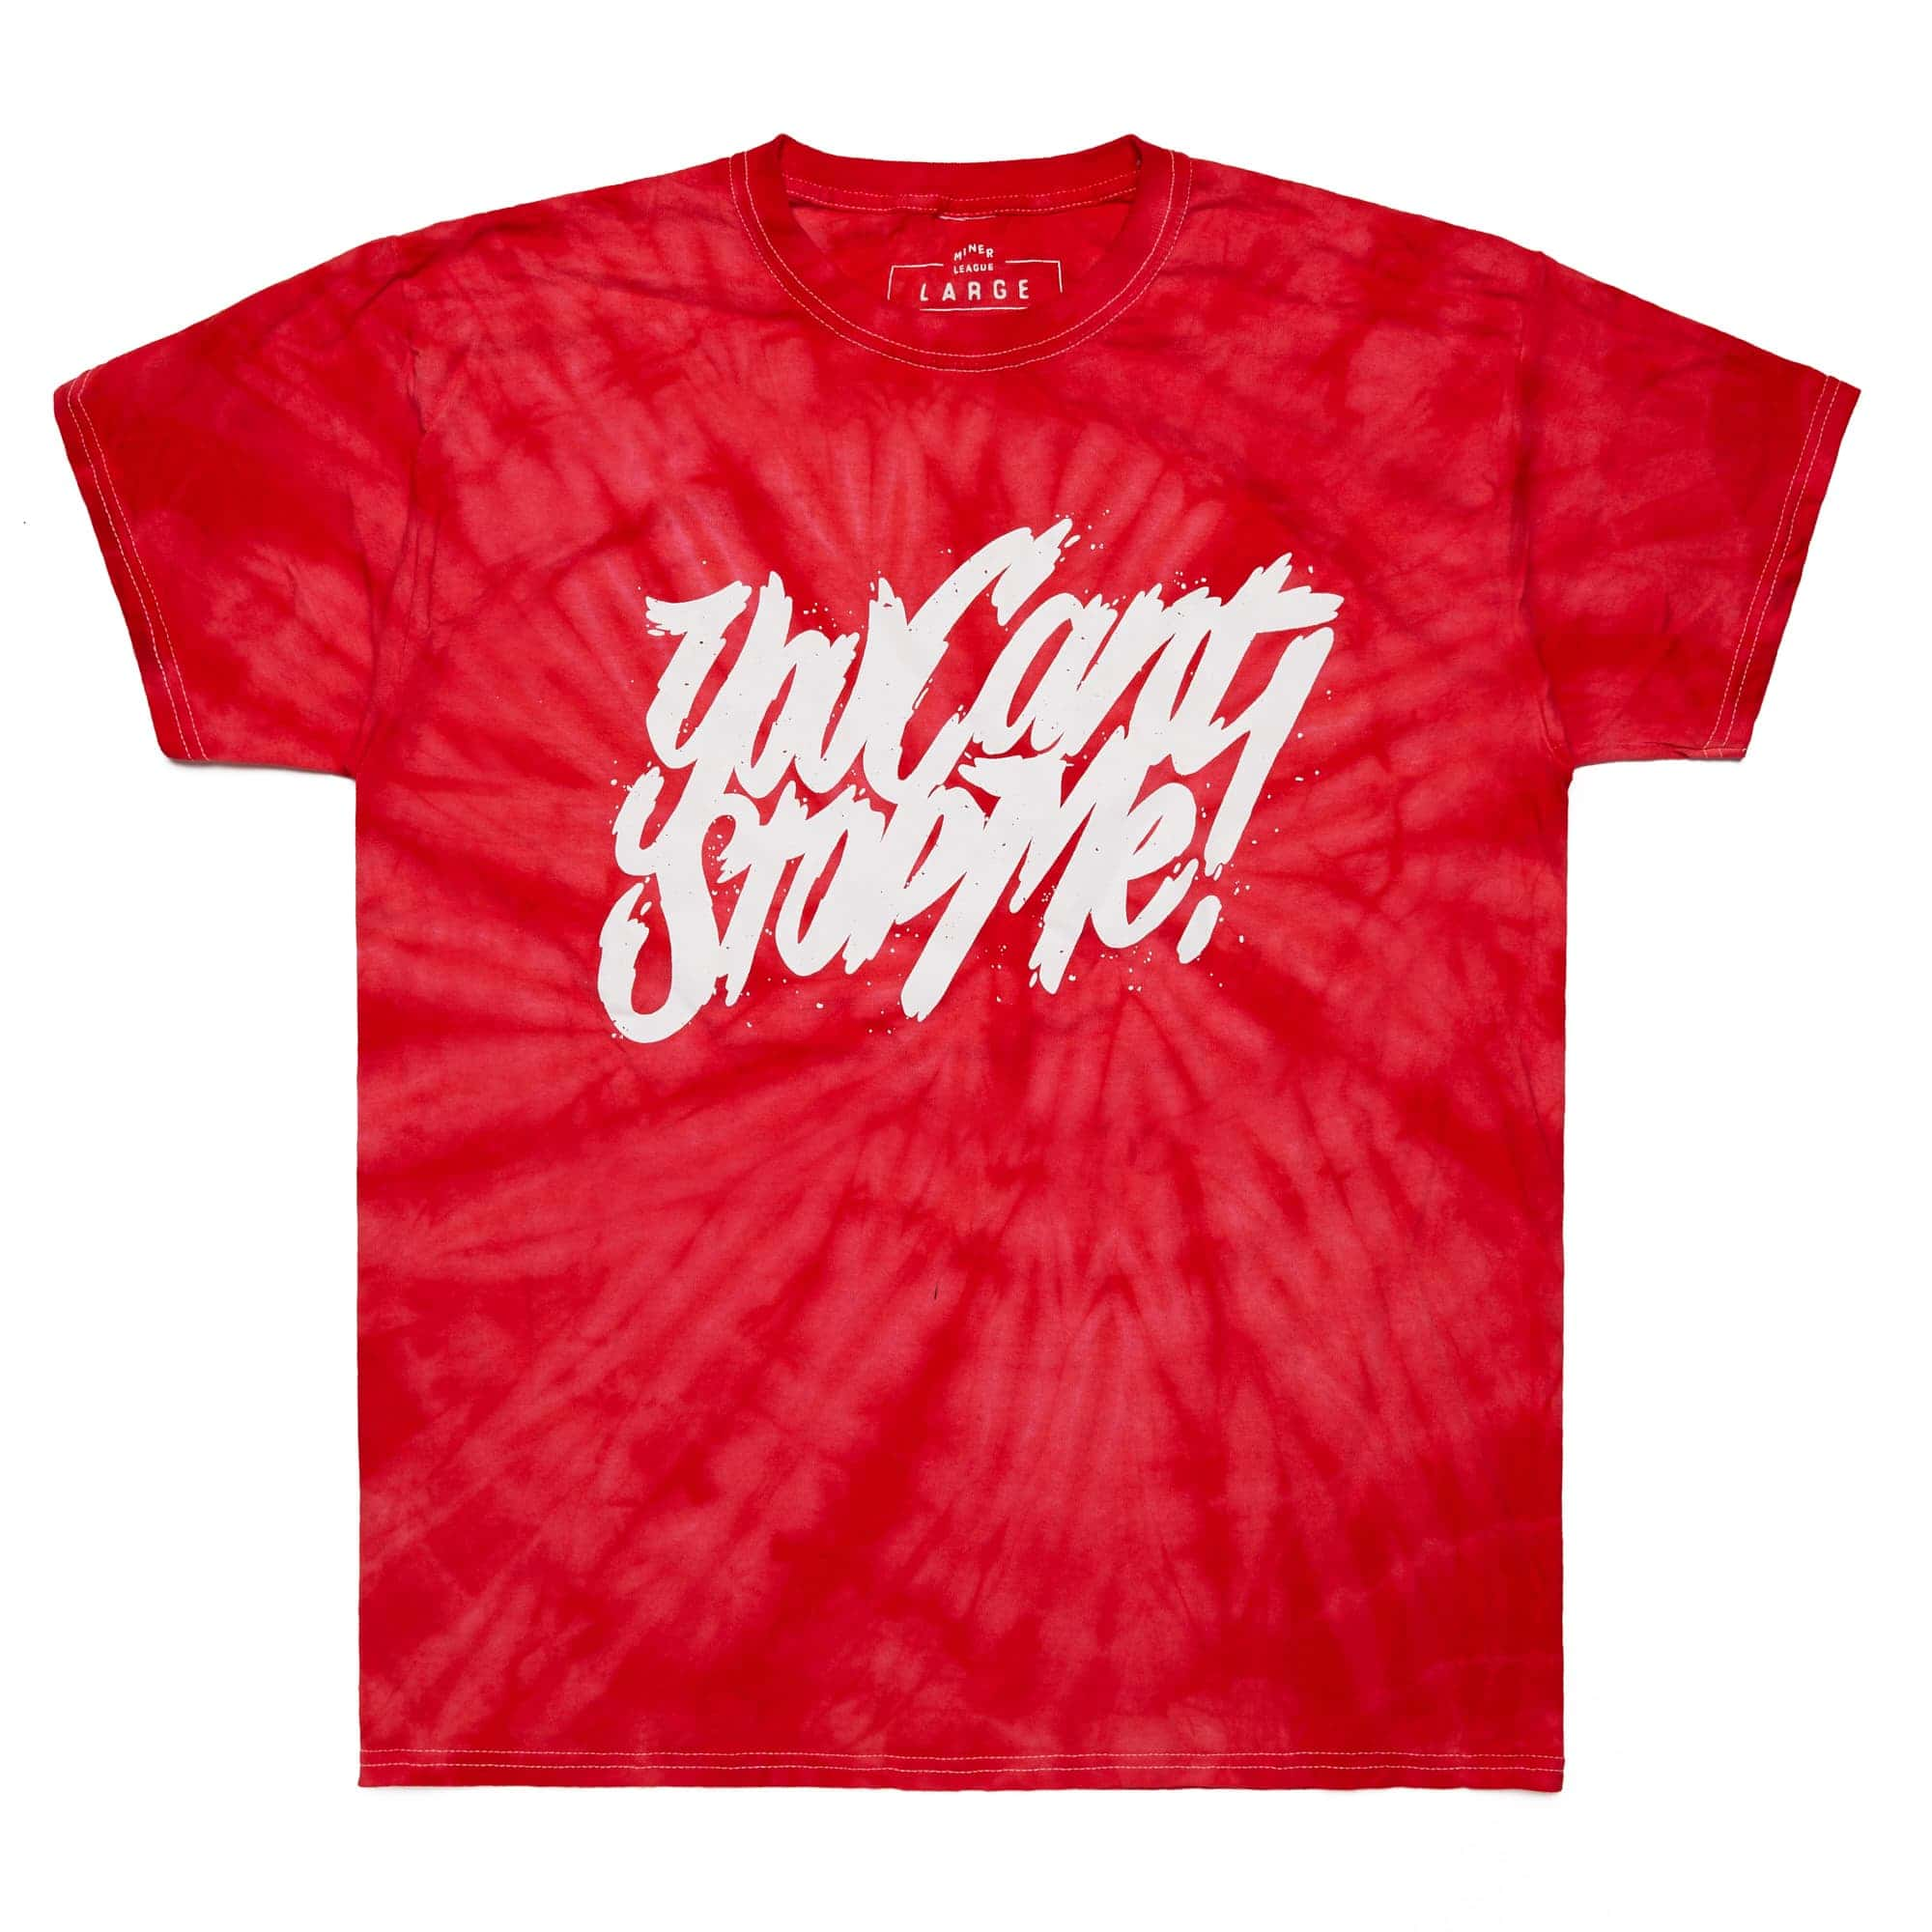 'You Can't Stop Me' Spider Crimson Tie Dye Tee